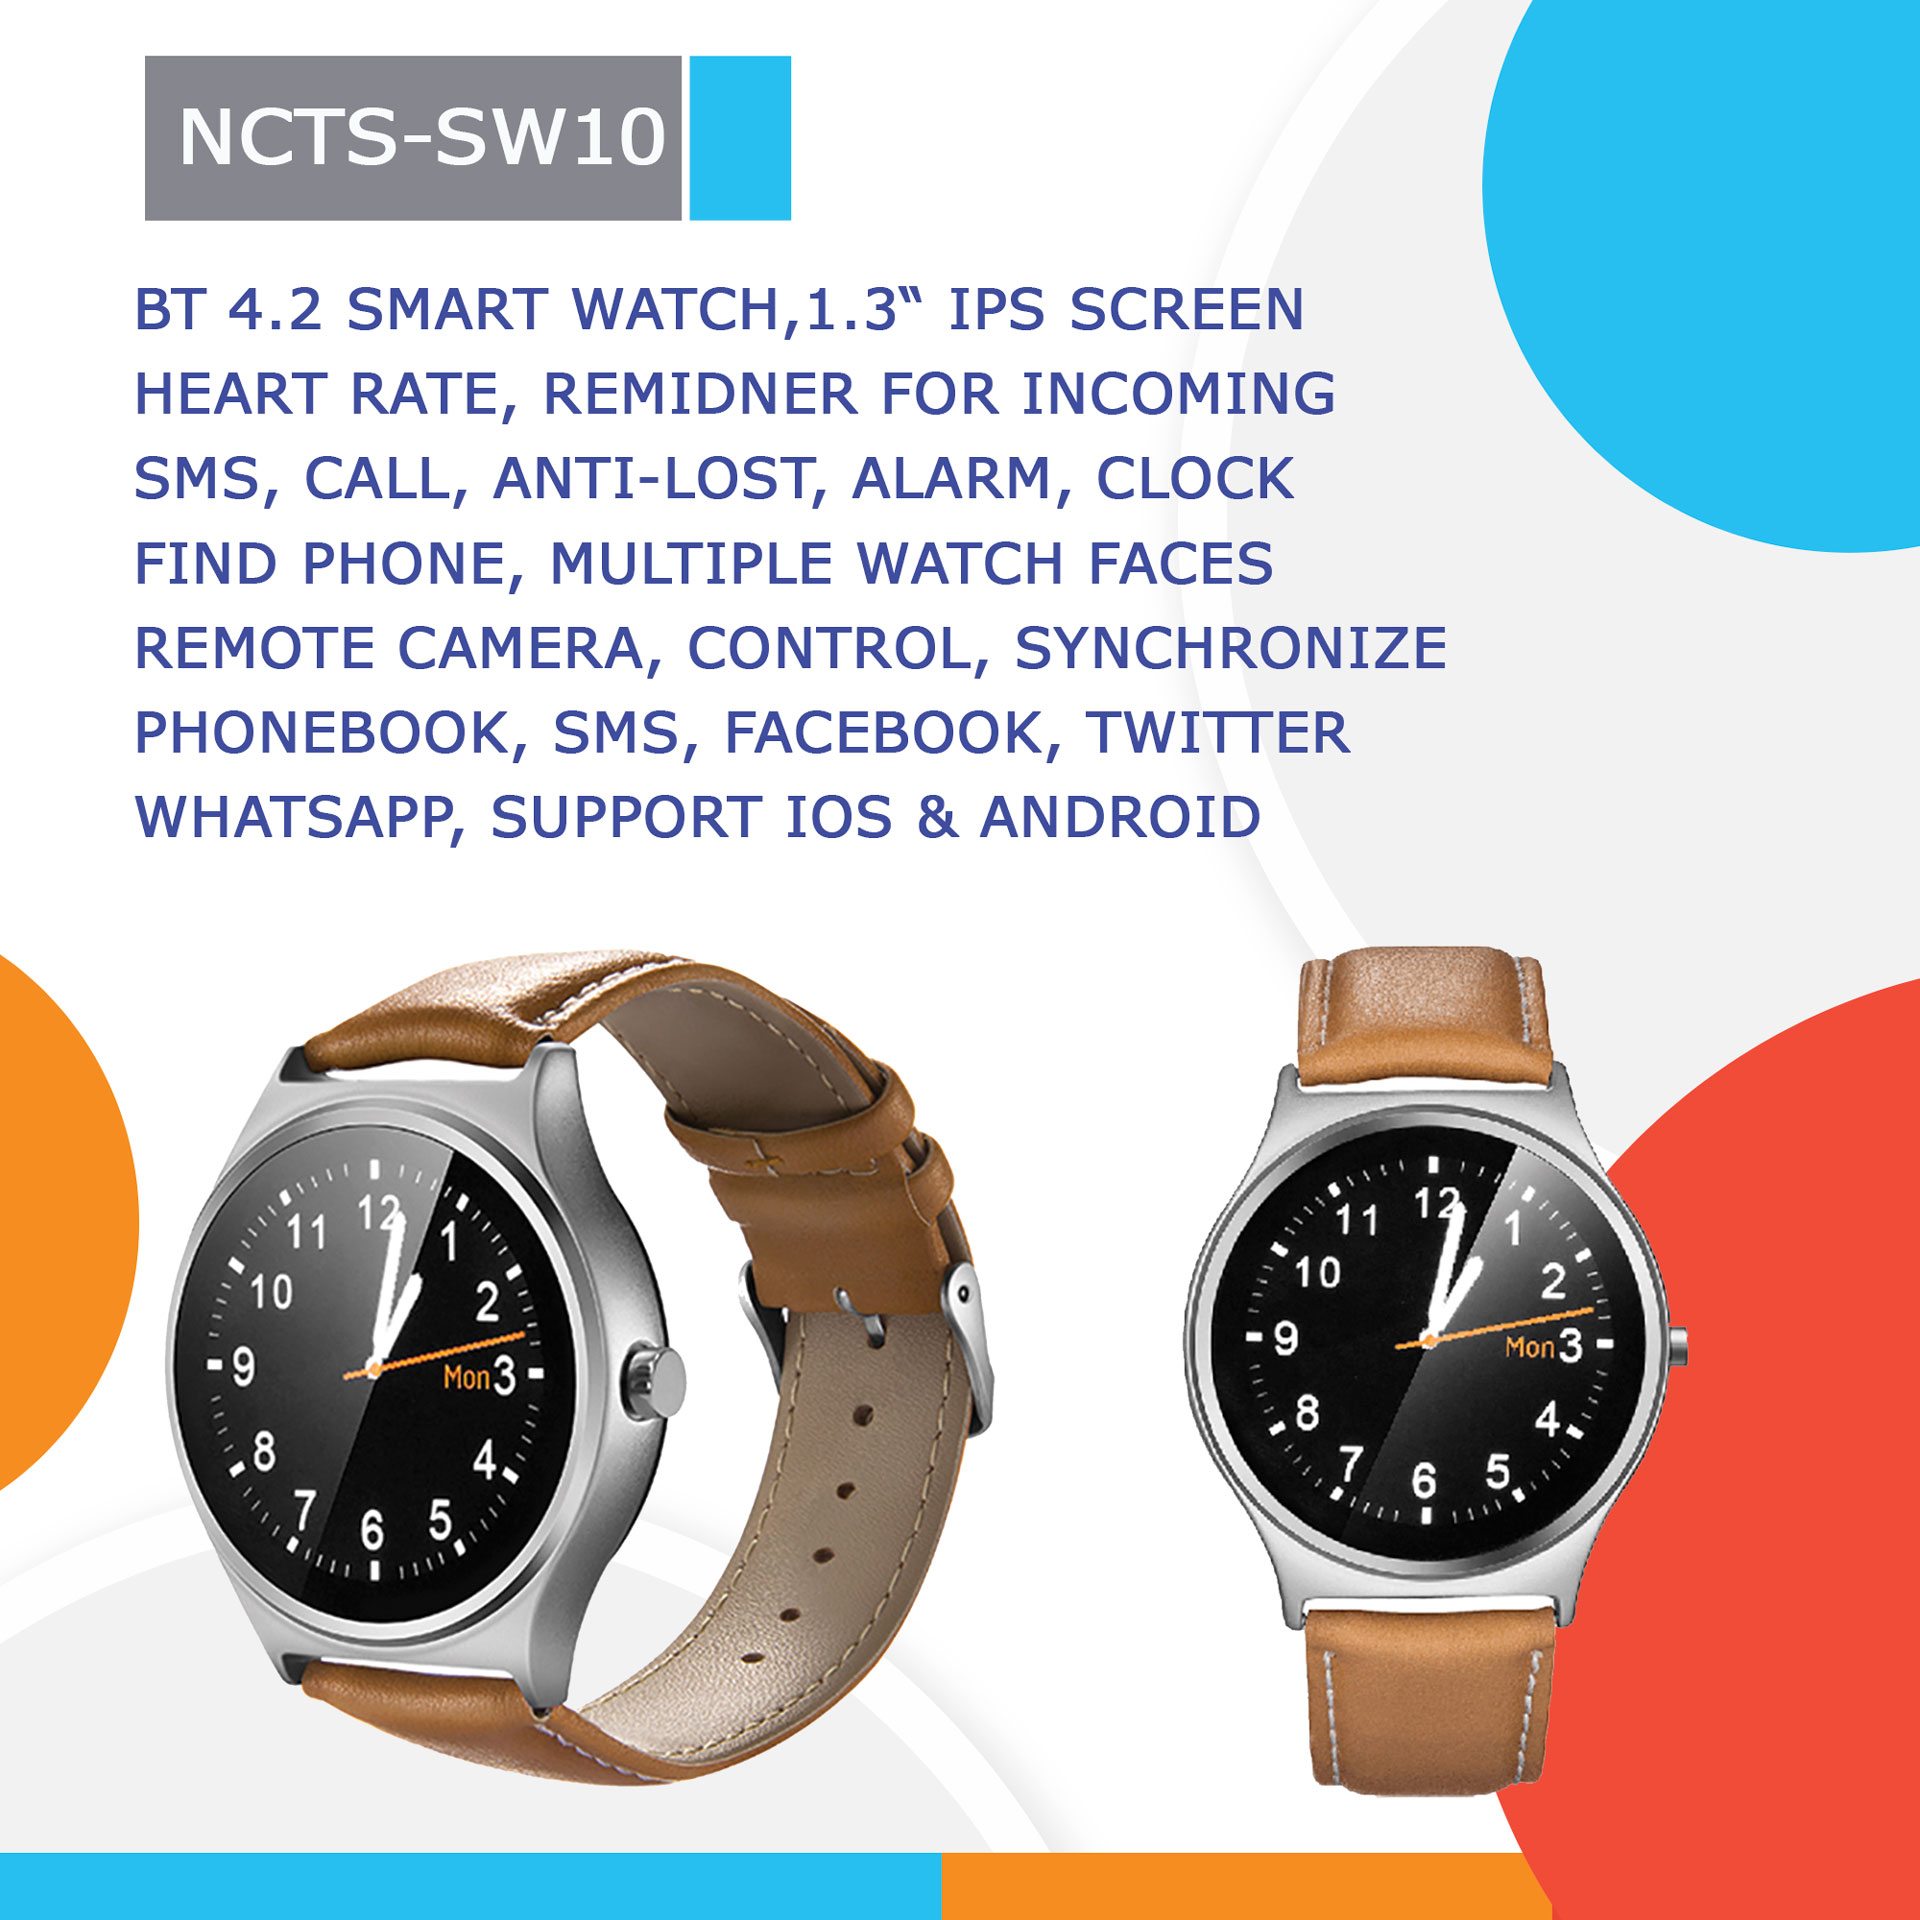 NCTS-SW10